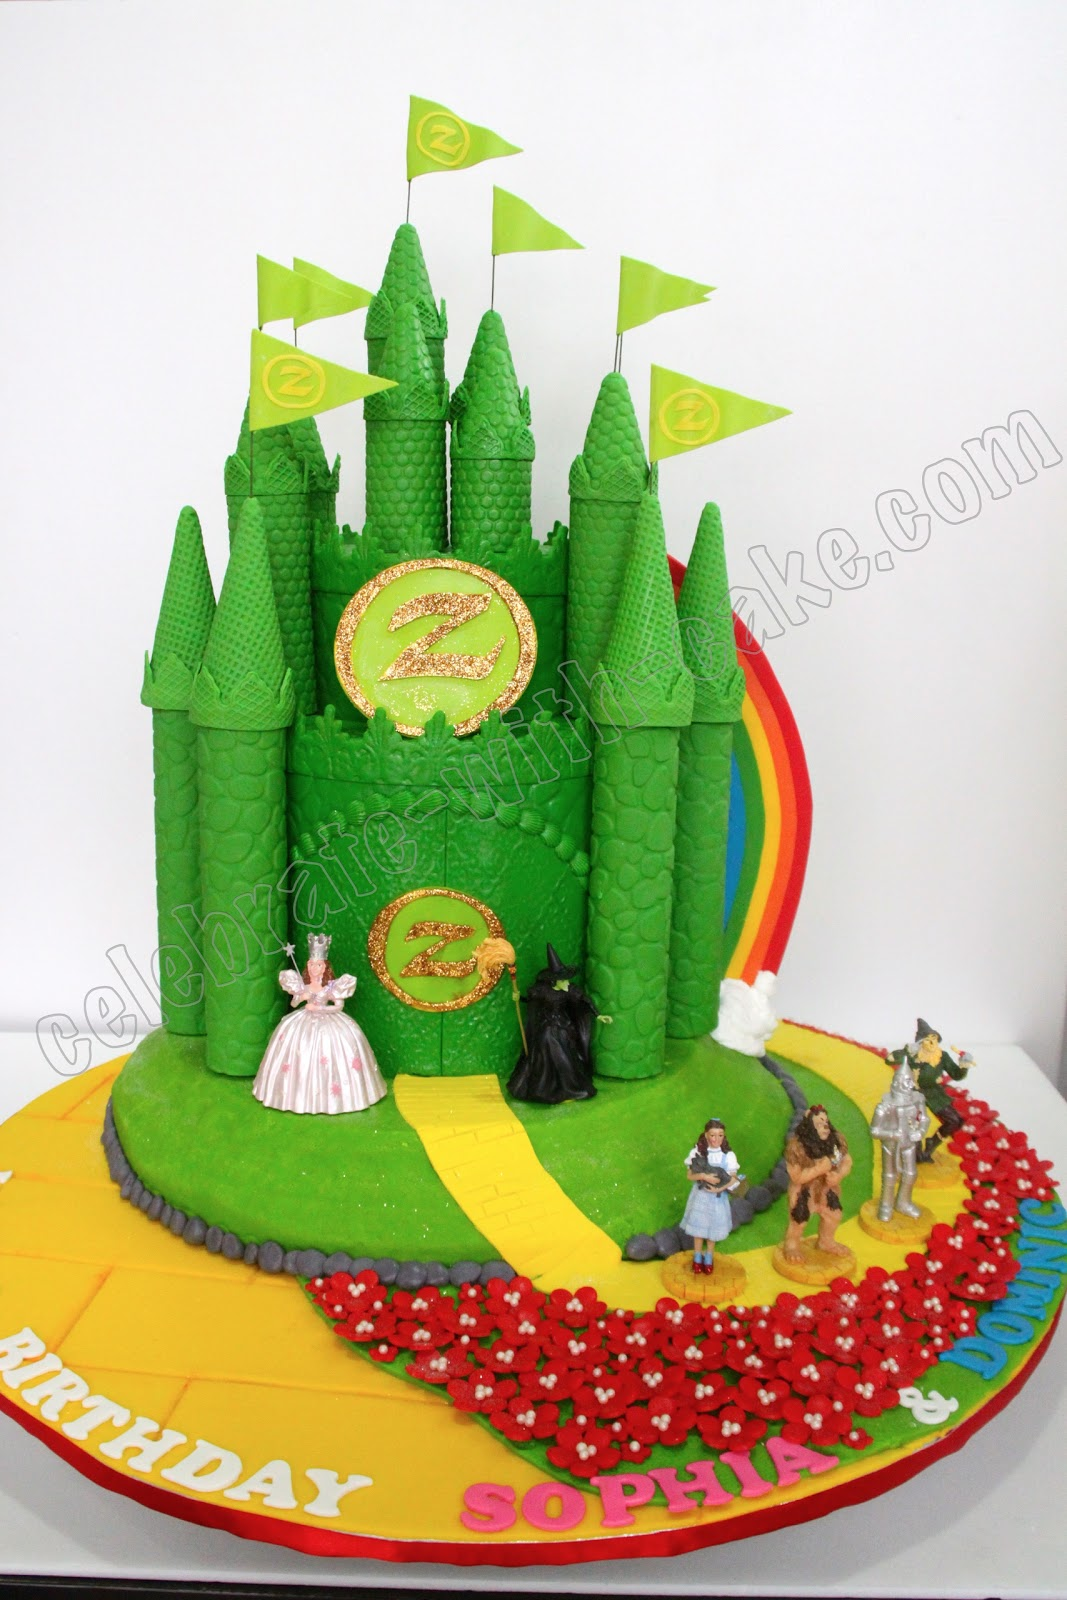 Celebrate With Cake Wizard Of Oz Cake